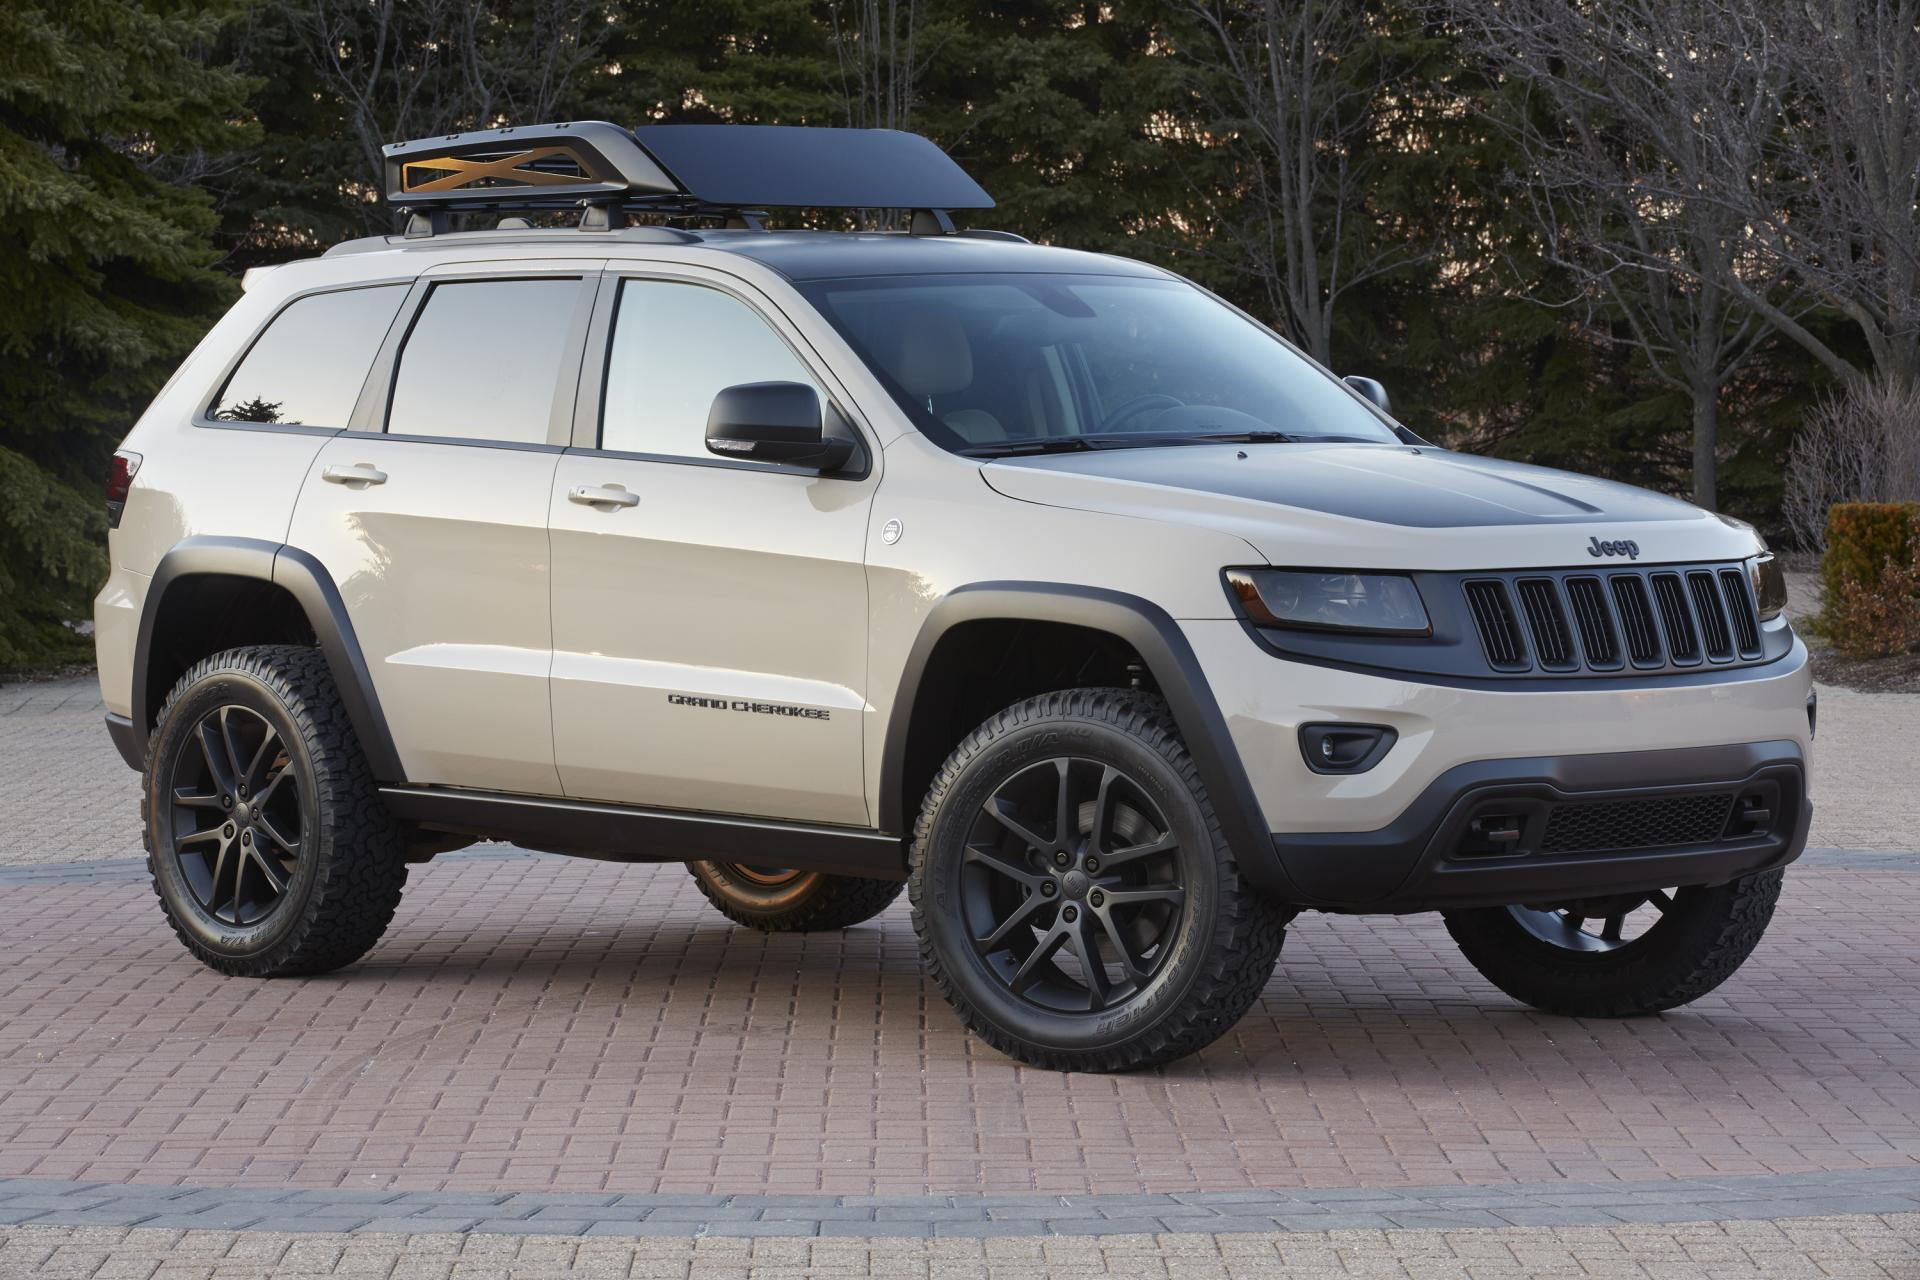 jeep grand cherokee picture - photo #15